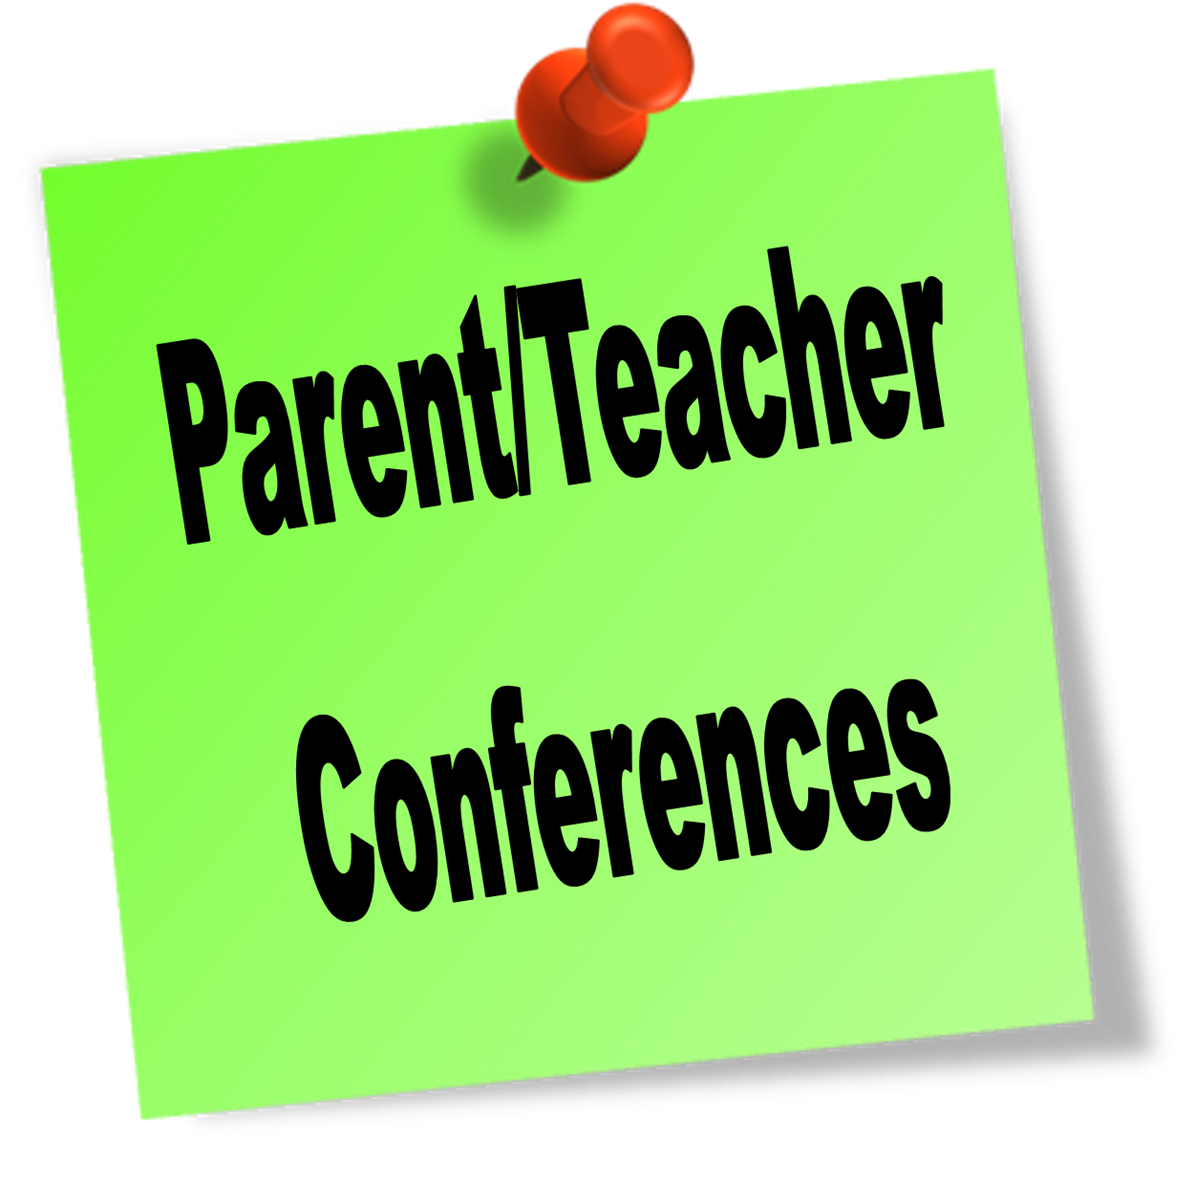 parent-teaher conference